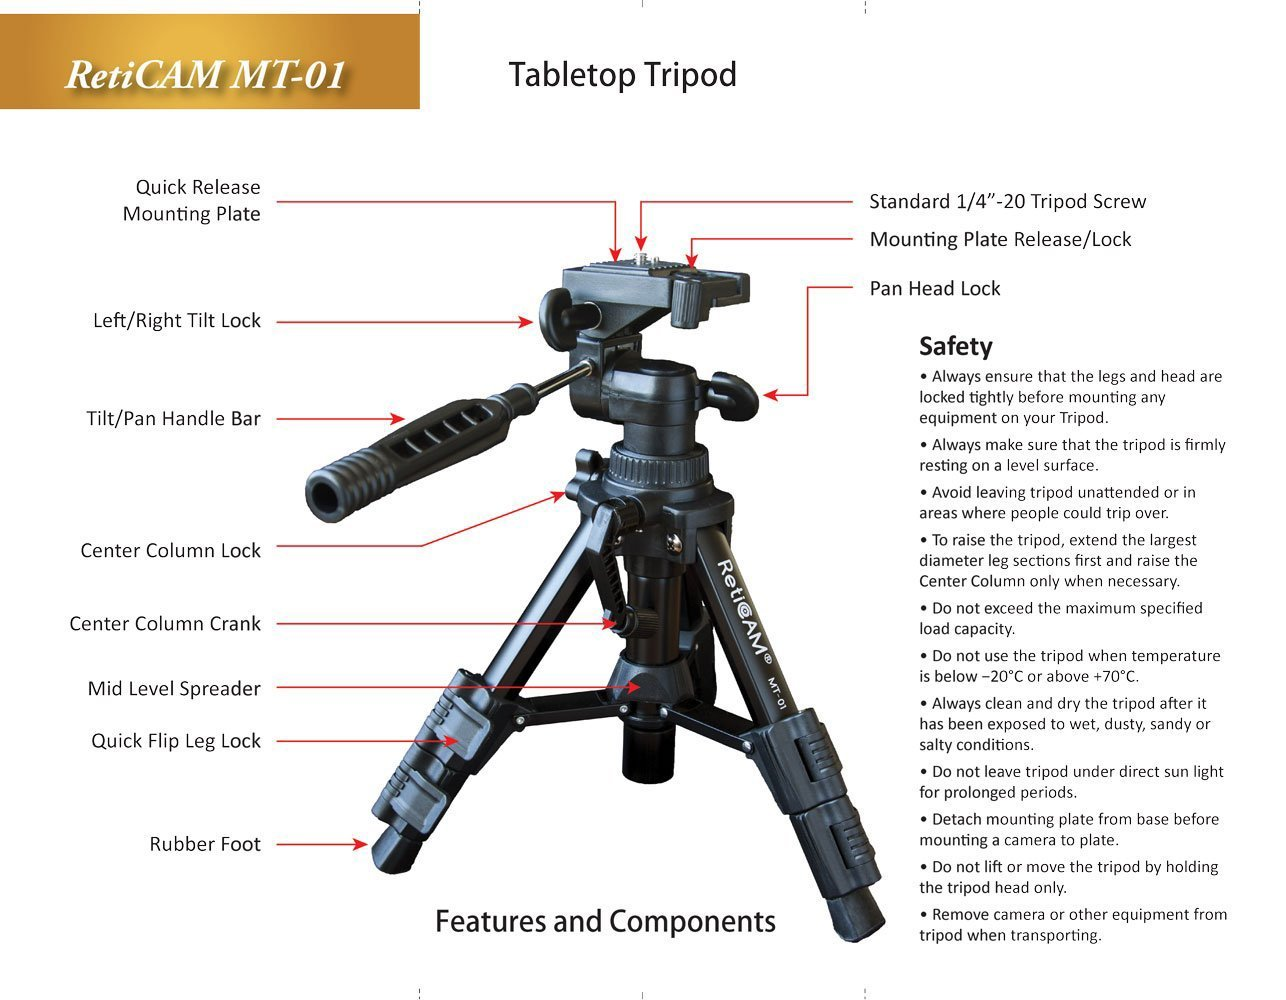 reticam mini tripod, mini camera stand, small tripod, travel tripod